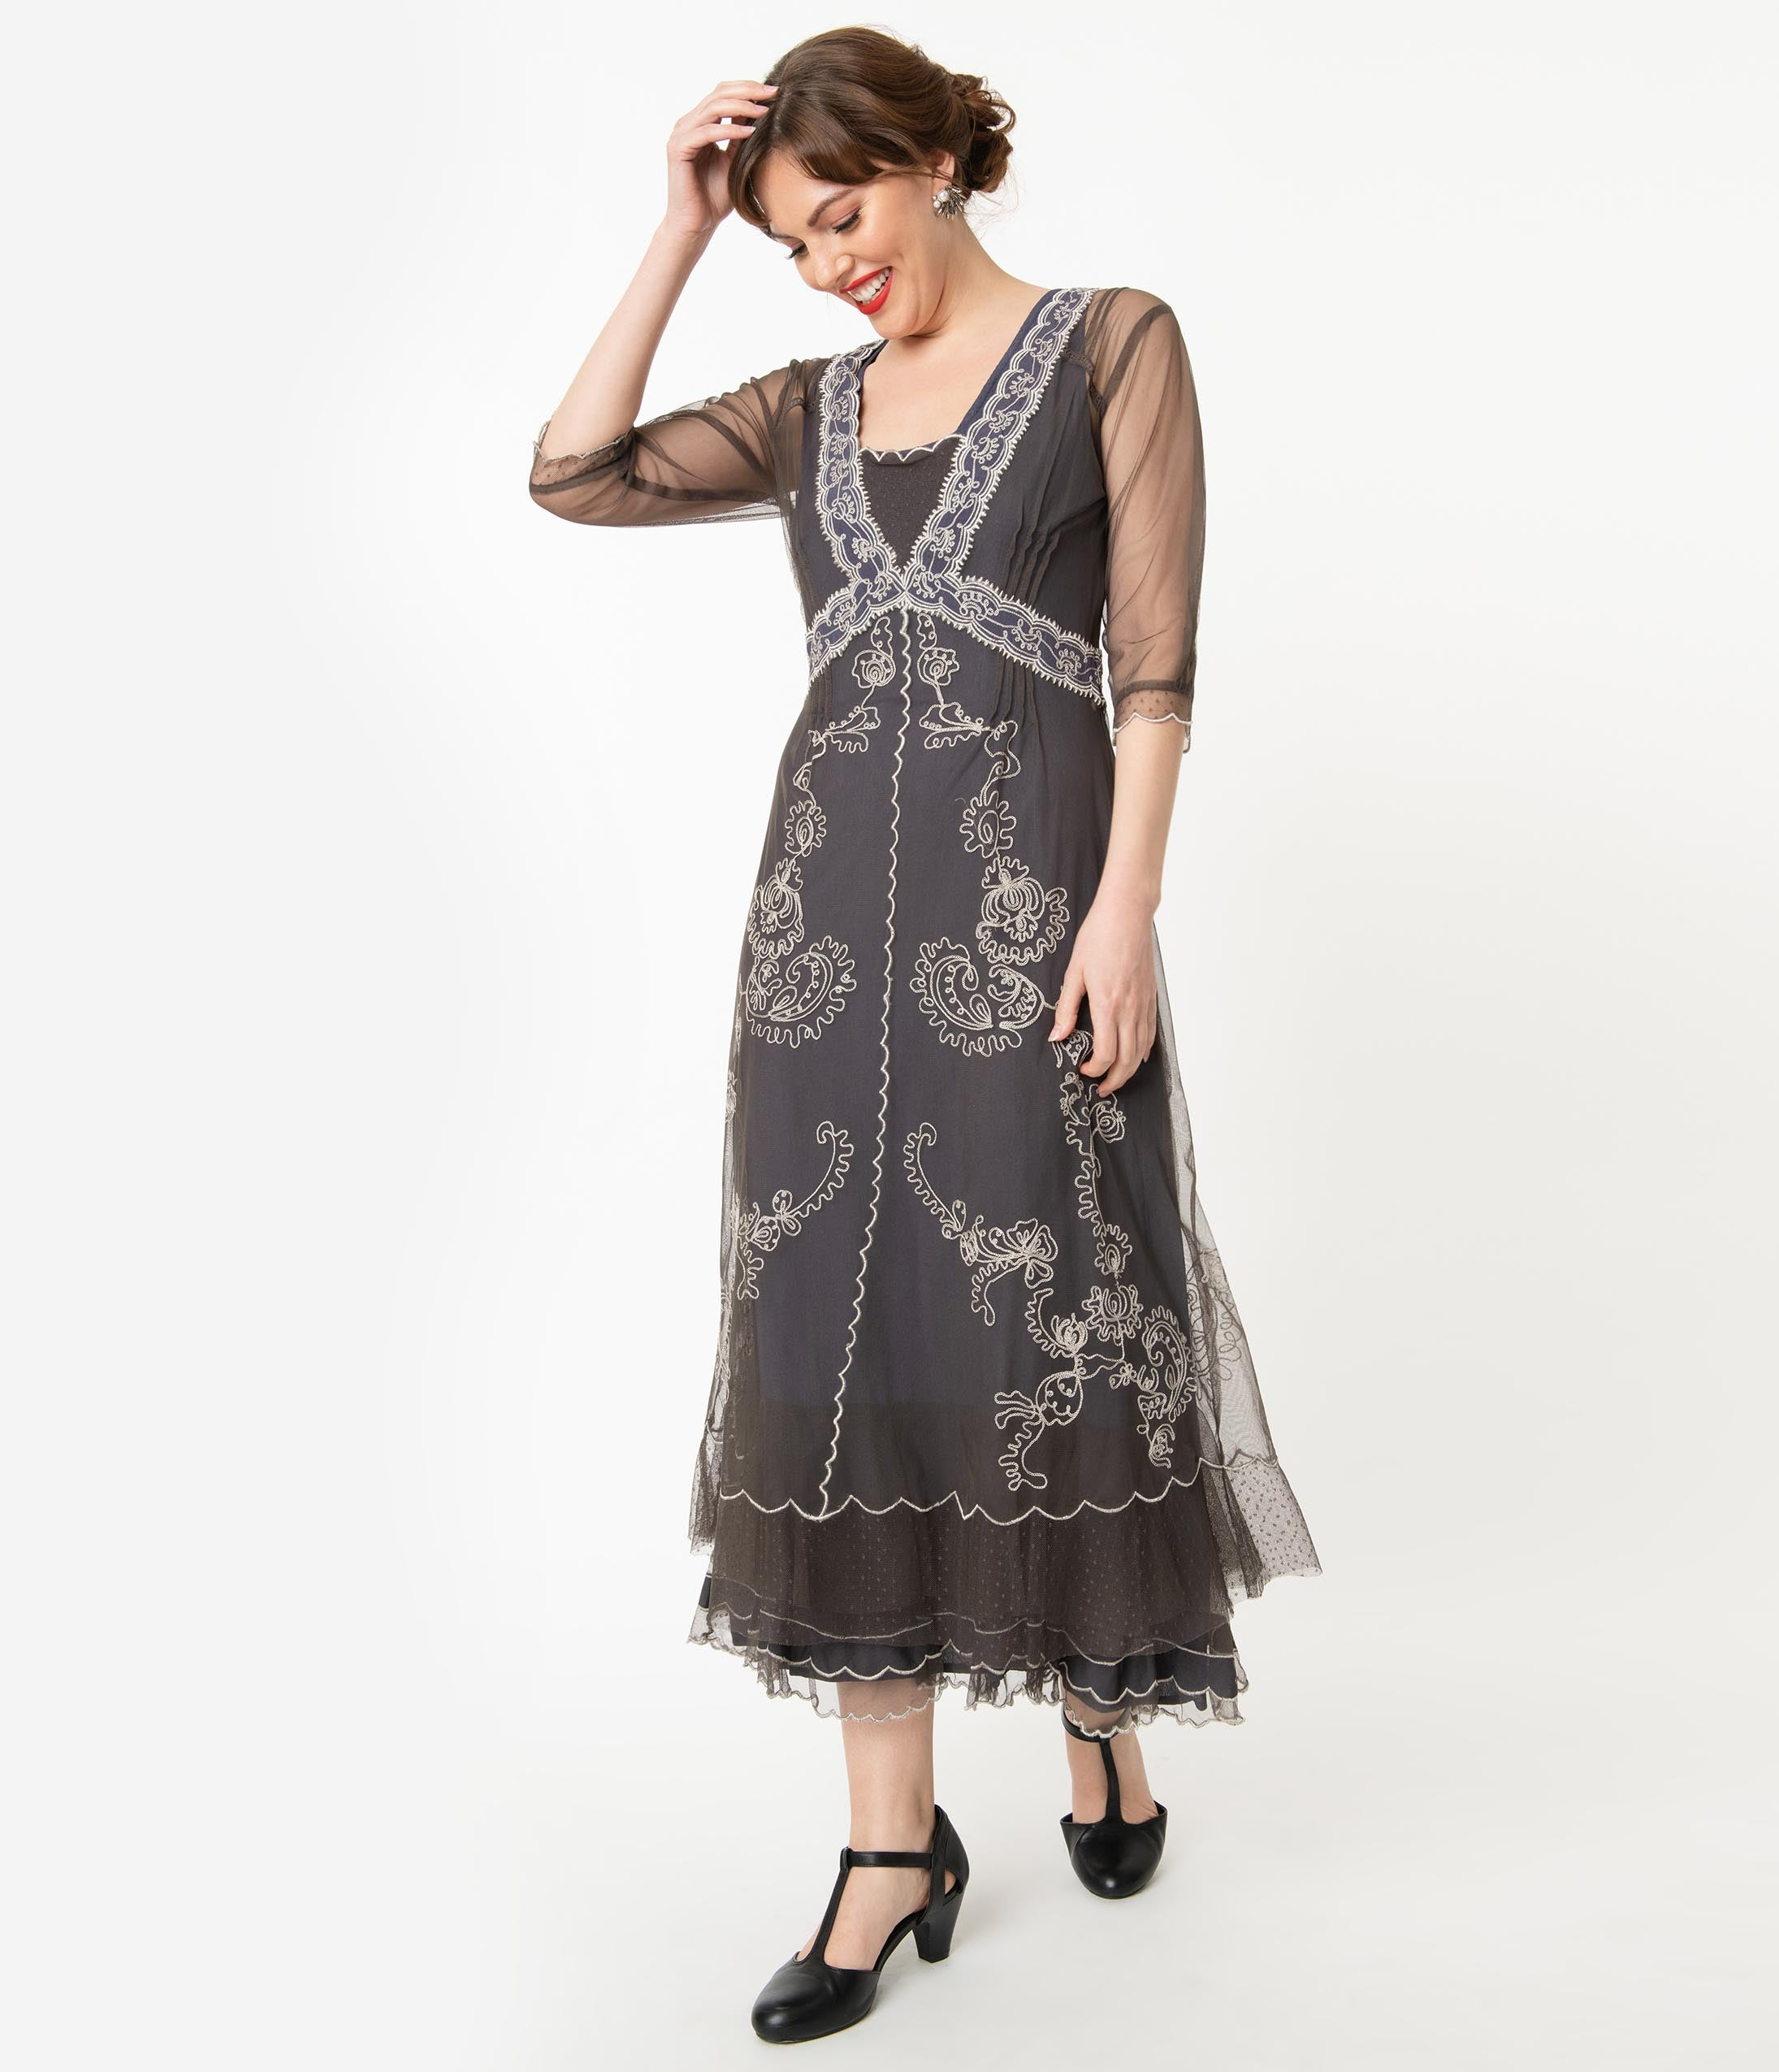 1920s Outfit Ideas: 10 Downton Abbey Inspired Costumes Vintage Style Grey Mesh Embroidered Edwardian Flapper Dress $308.00 AT vintagedancer.com